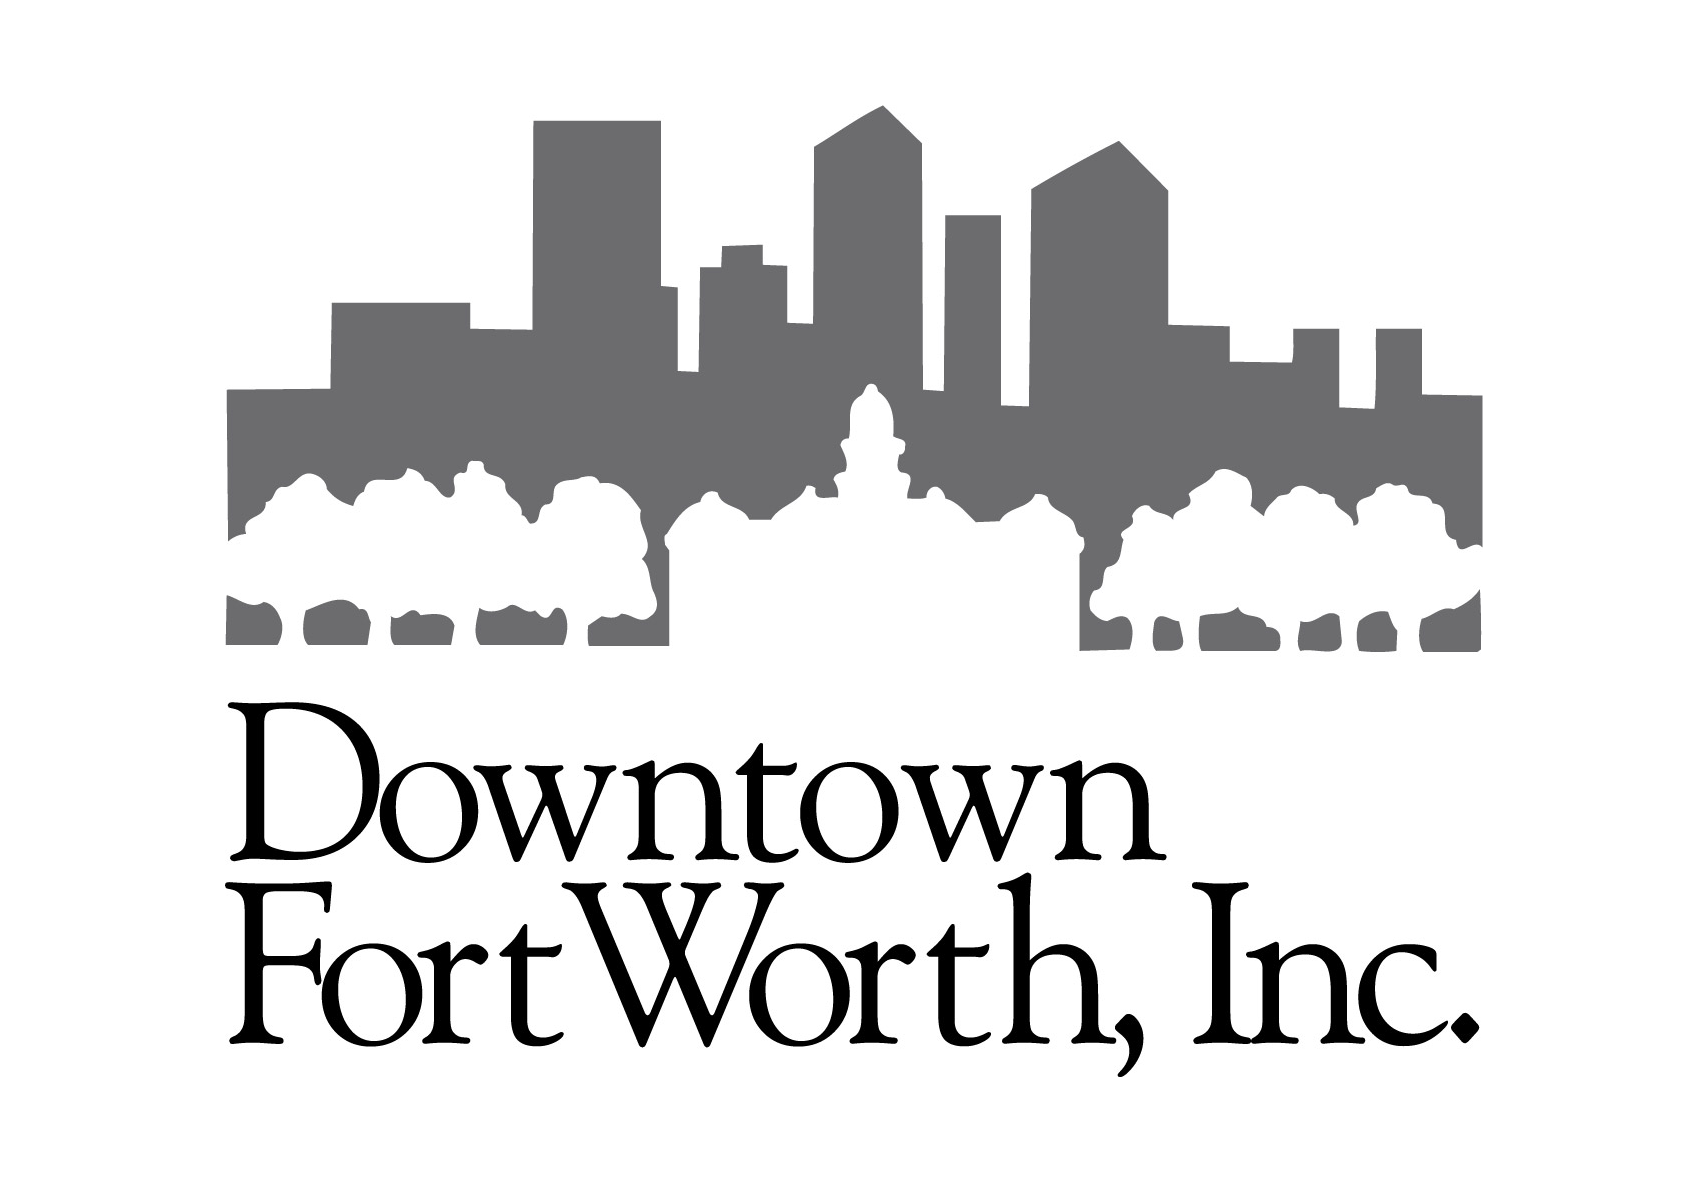 Downtown Fort Worth, Inc.